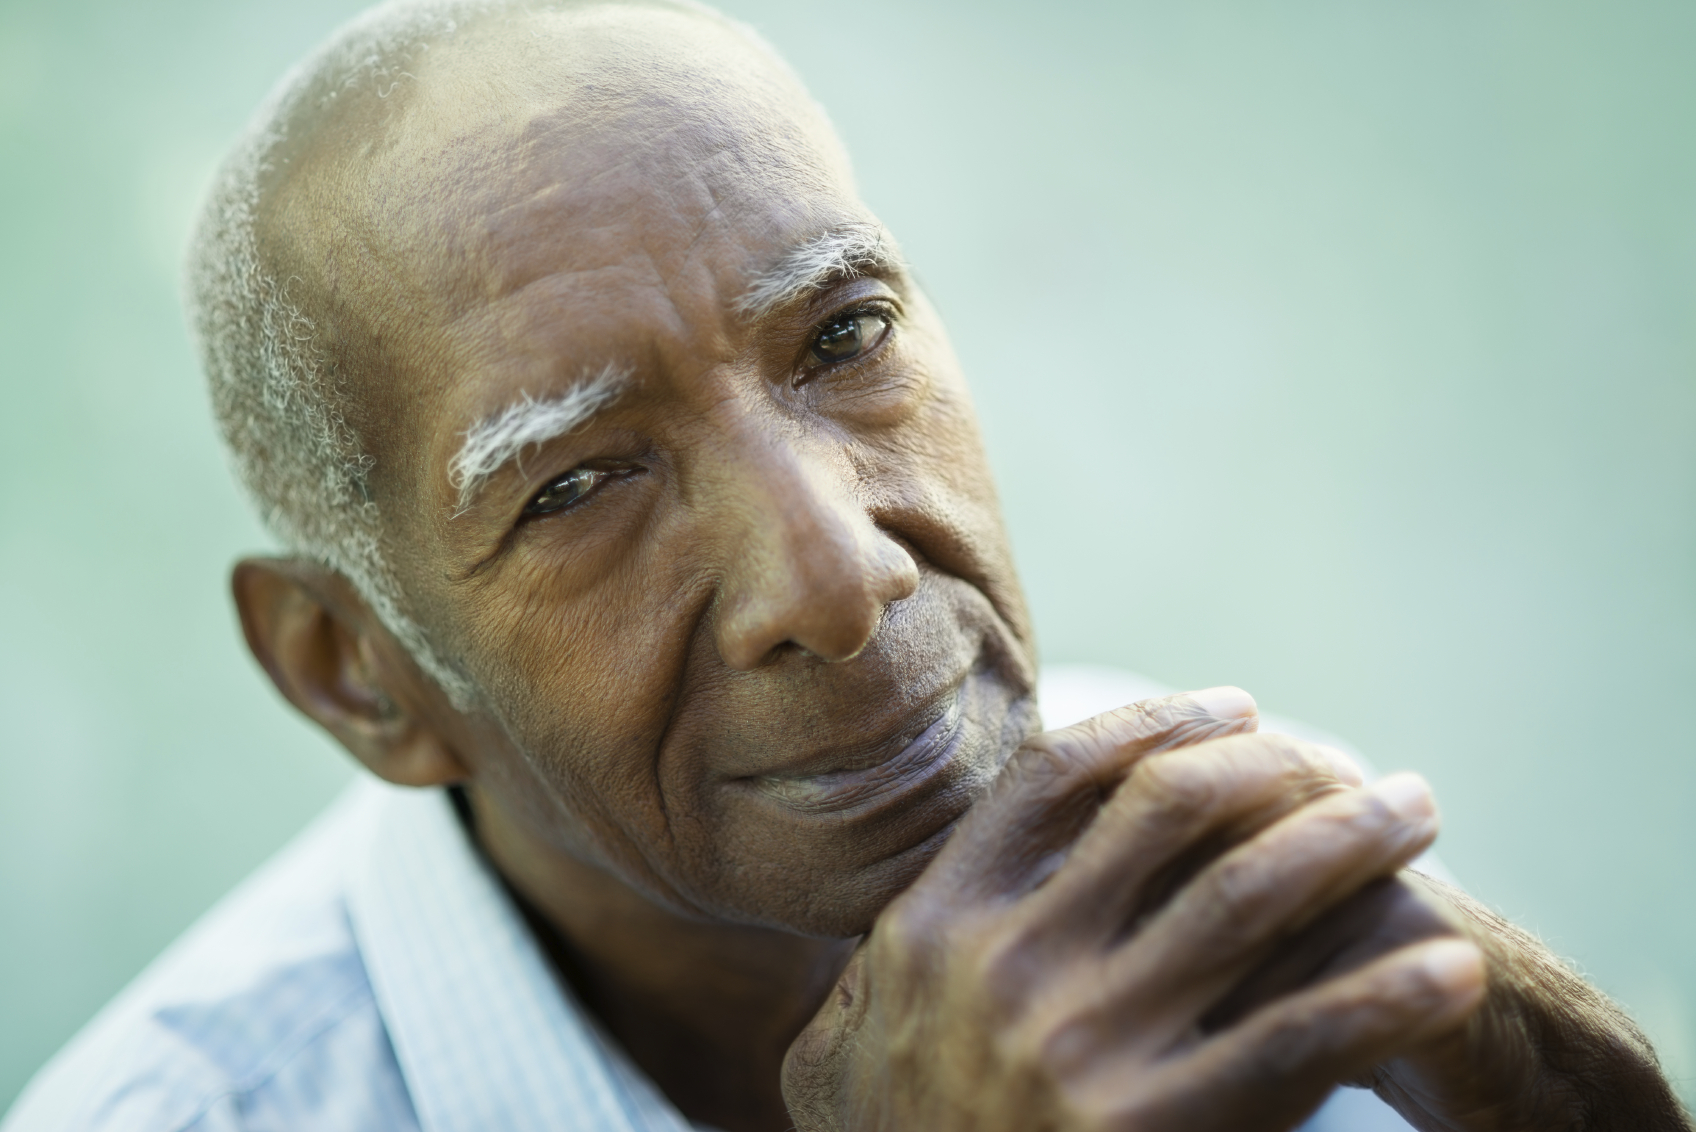 Are black men with prostate cancer getting inferior care? - CBS News